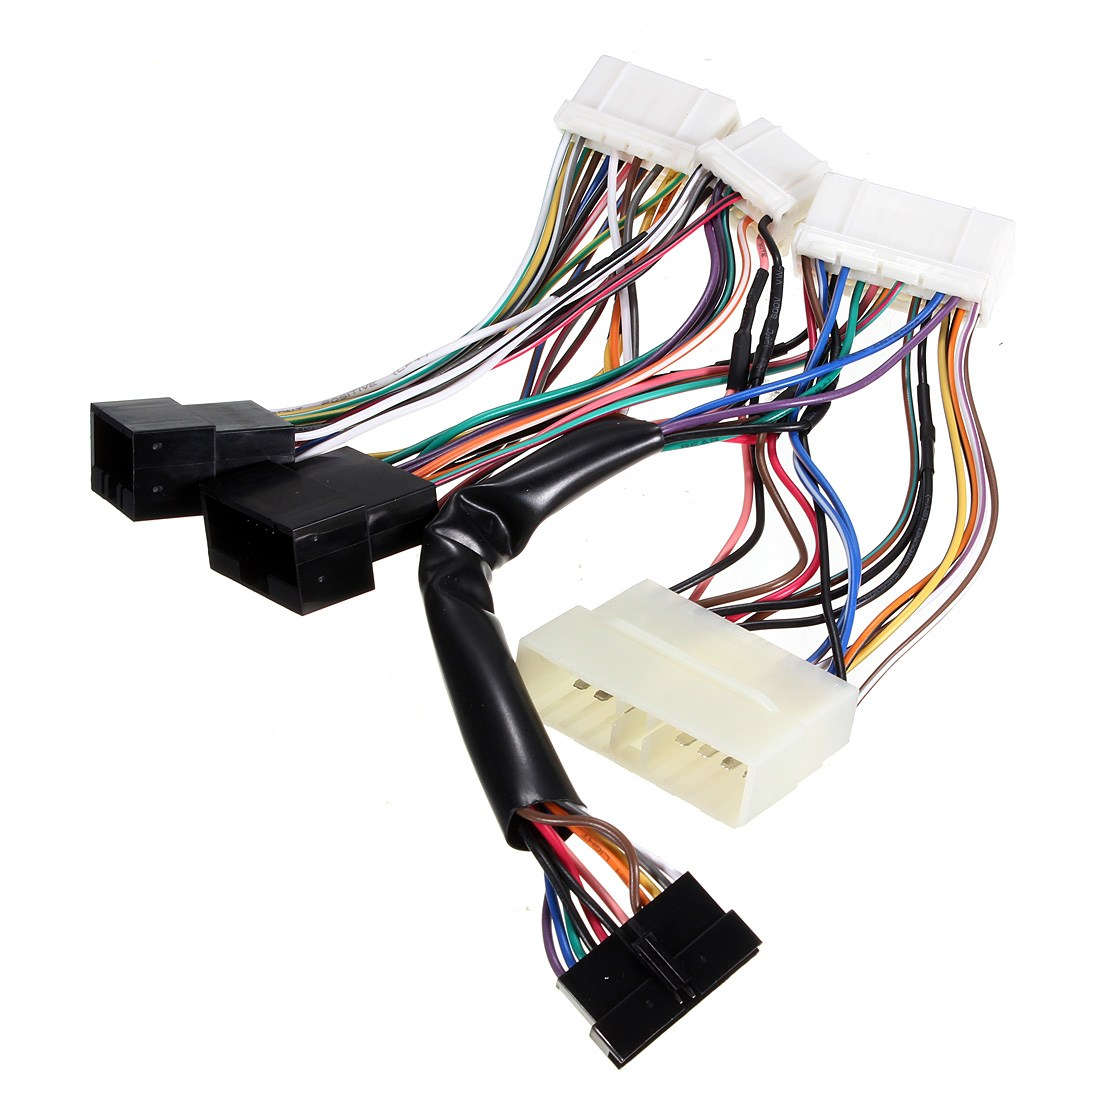 Peachy New Obd2A To Obd1 Harness Car Vehicle Replace Ecu Jumper Conversion Wiring Cloud Brecesaoduqqnet